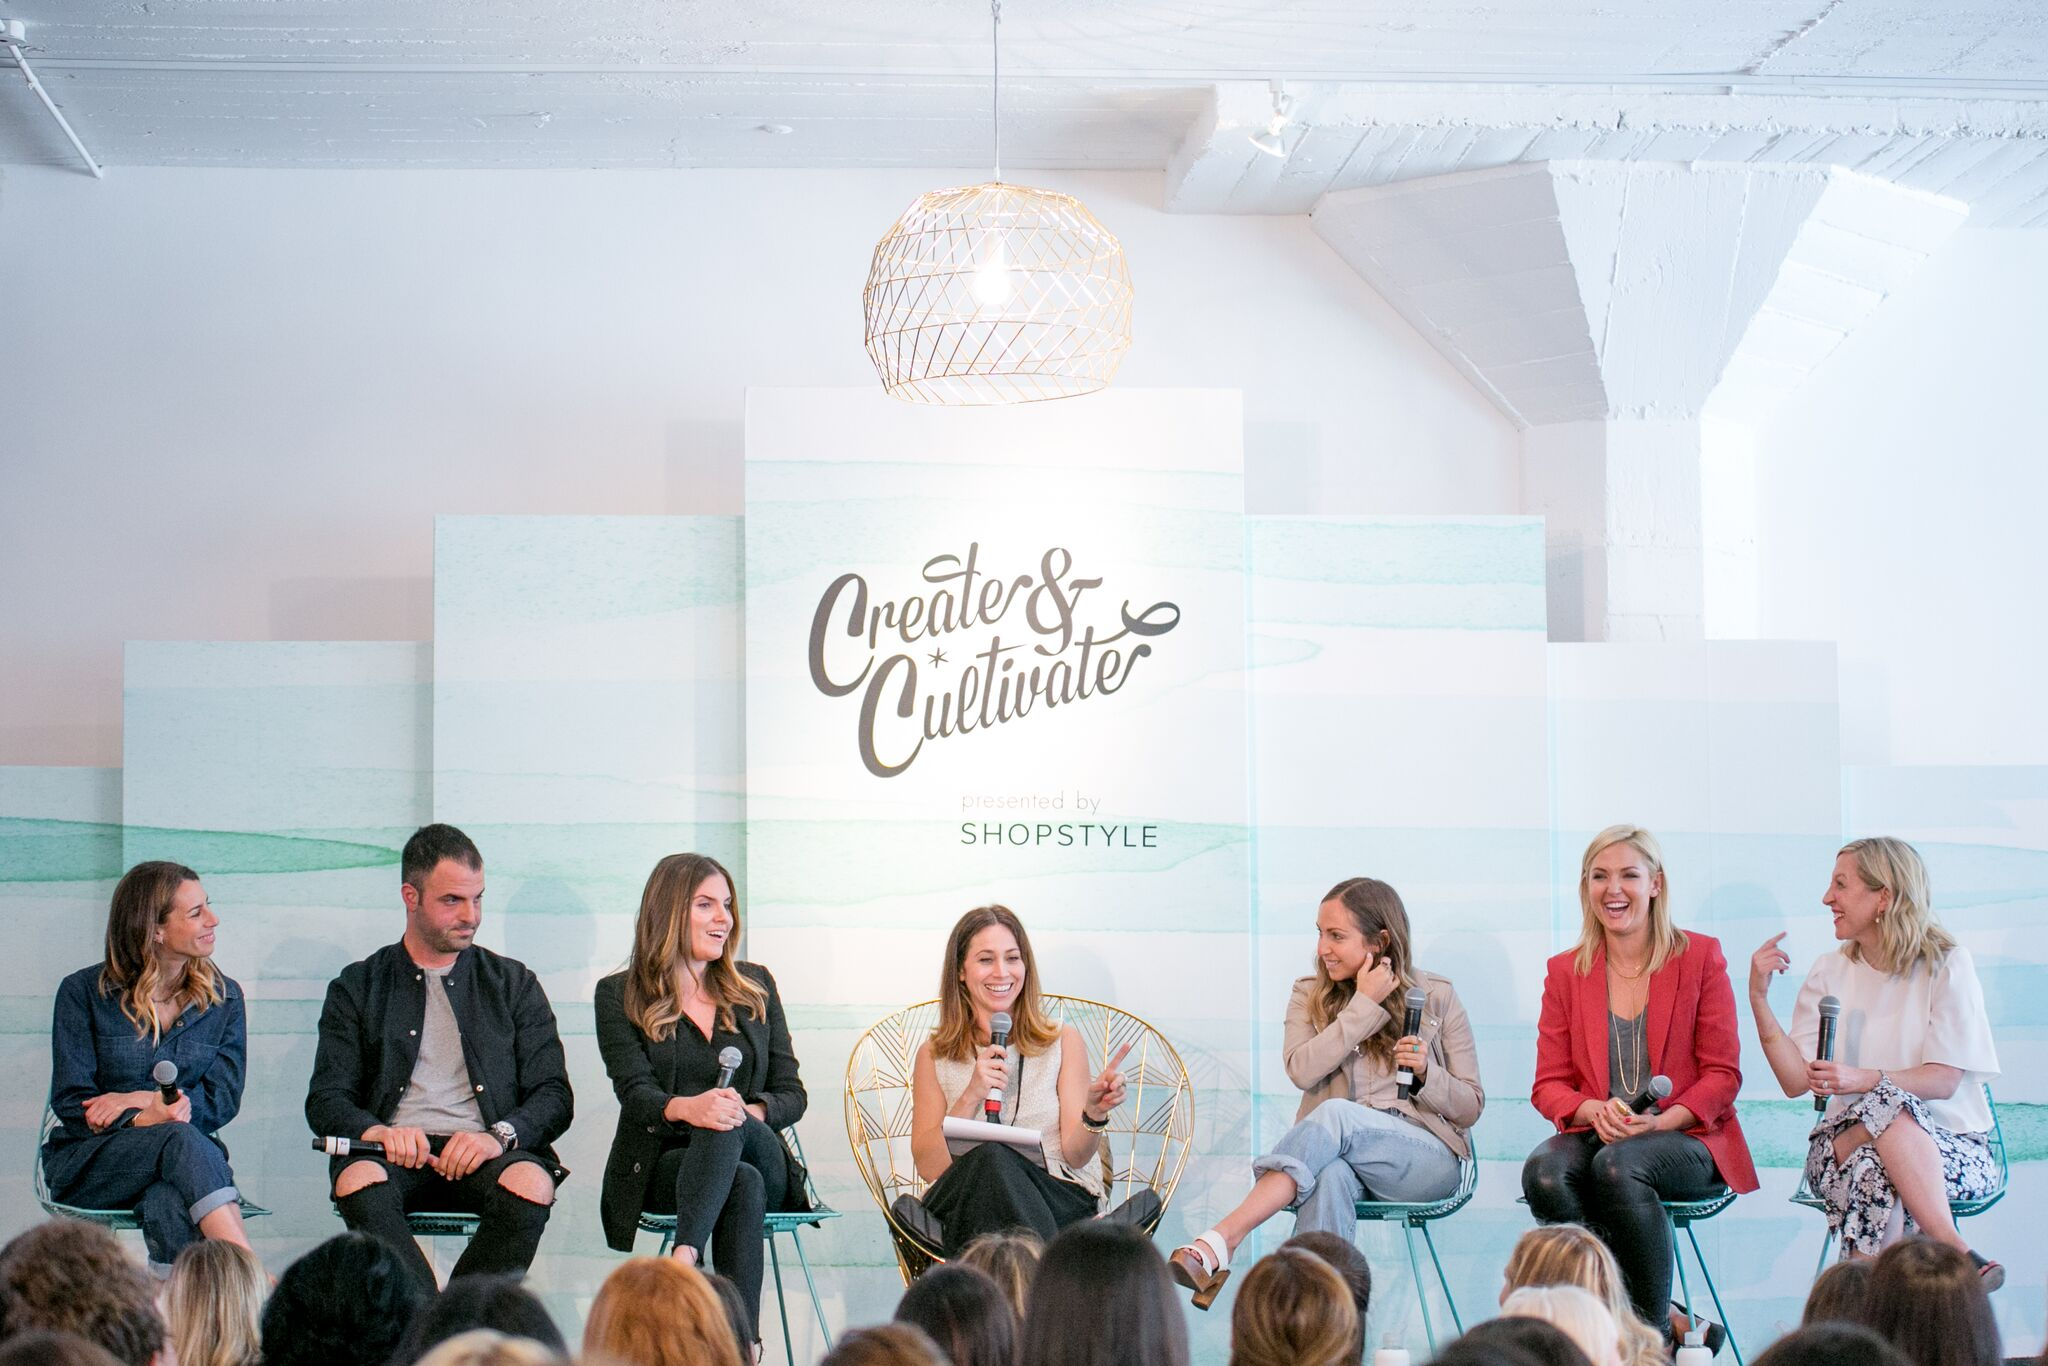 Jackie (center) and Susan (far right) on panel at CreateCultivateDTLA.